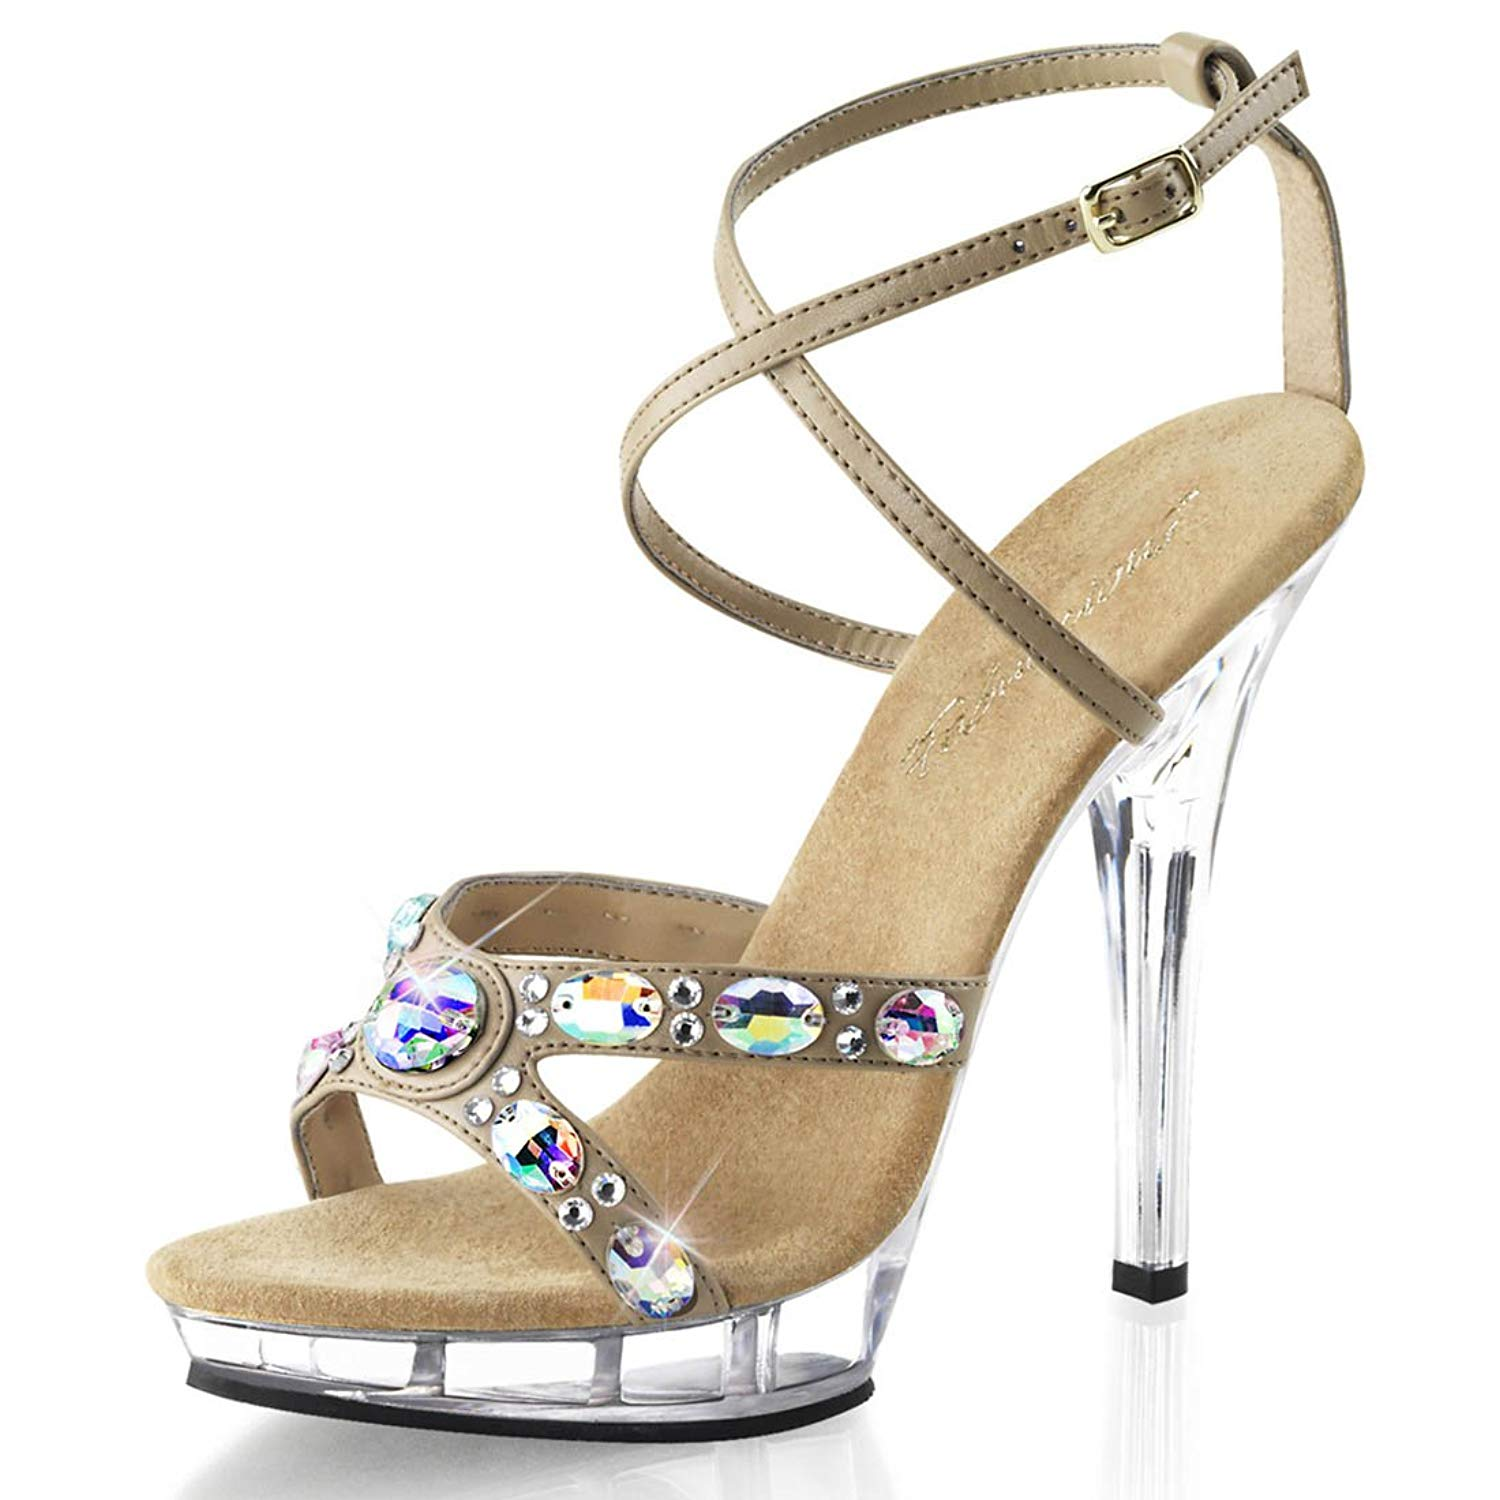 d141b0de7040 Get Quotations · Summitfashions Strappy Nude Embellished Sandals with  Rhinestones and 5 Inch Lucite Heels